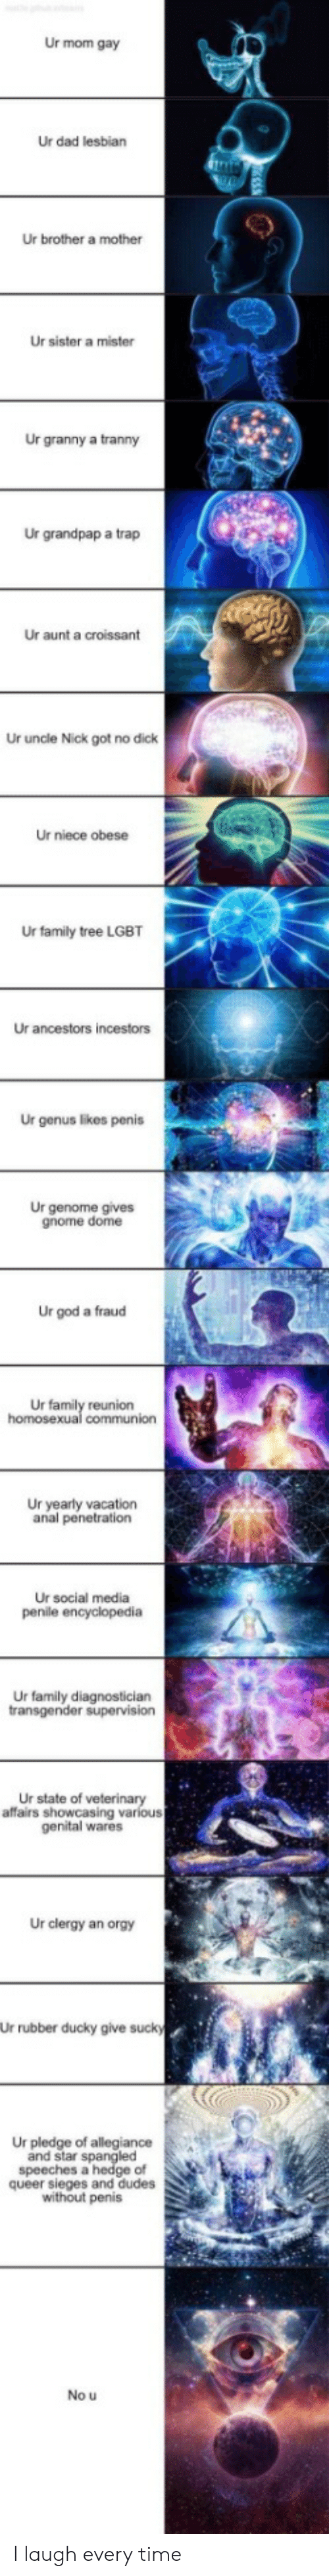 reunion: Ur mom gay  Ur dad lesbian  Ur brother a mother  Ur sister a mister  Ur granny a tranny  Ur grandpap a trap  Ur aunt a croissant  Ur uncle Nick got no dick  Ur niece obese  Ur family tree LGBT  Ur ancestors incestors  Ur genus likes penis  Ur genome gives  gnome dome  Ur god a fraud  Ur family reunion  homosexual communion  Ur yearly vacation  anal penetration  Ur social media  penile encyclopedia  Ur family diagnostician  transgender supervision  Ur state of veterinary  affairs showcasing various  genital wares  Ur clergy an orgy  Ur rubber ducky give sucky  Ur pledge of allegiance  and star spangled  speeches a hedge of  queer sieges and dudes  without penis  No u I laugh every time